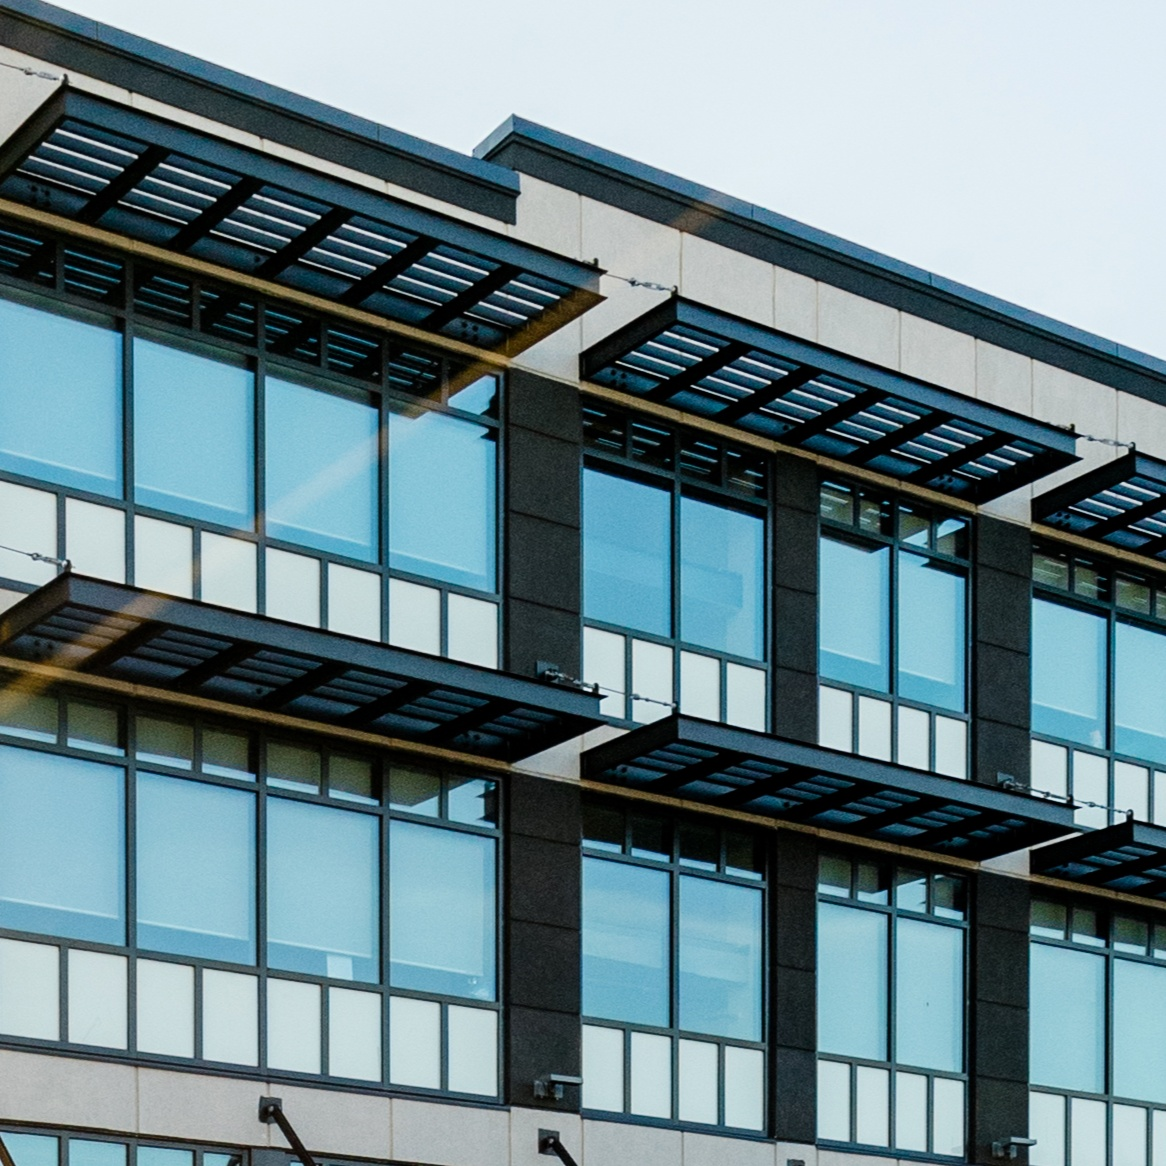 Architectural Photos of The Cube - 5